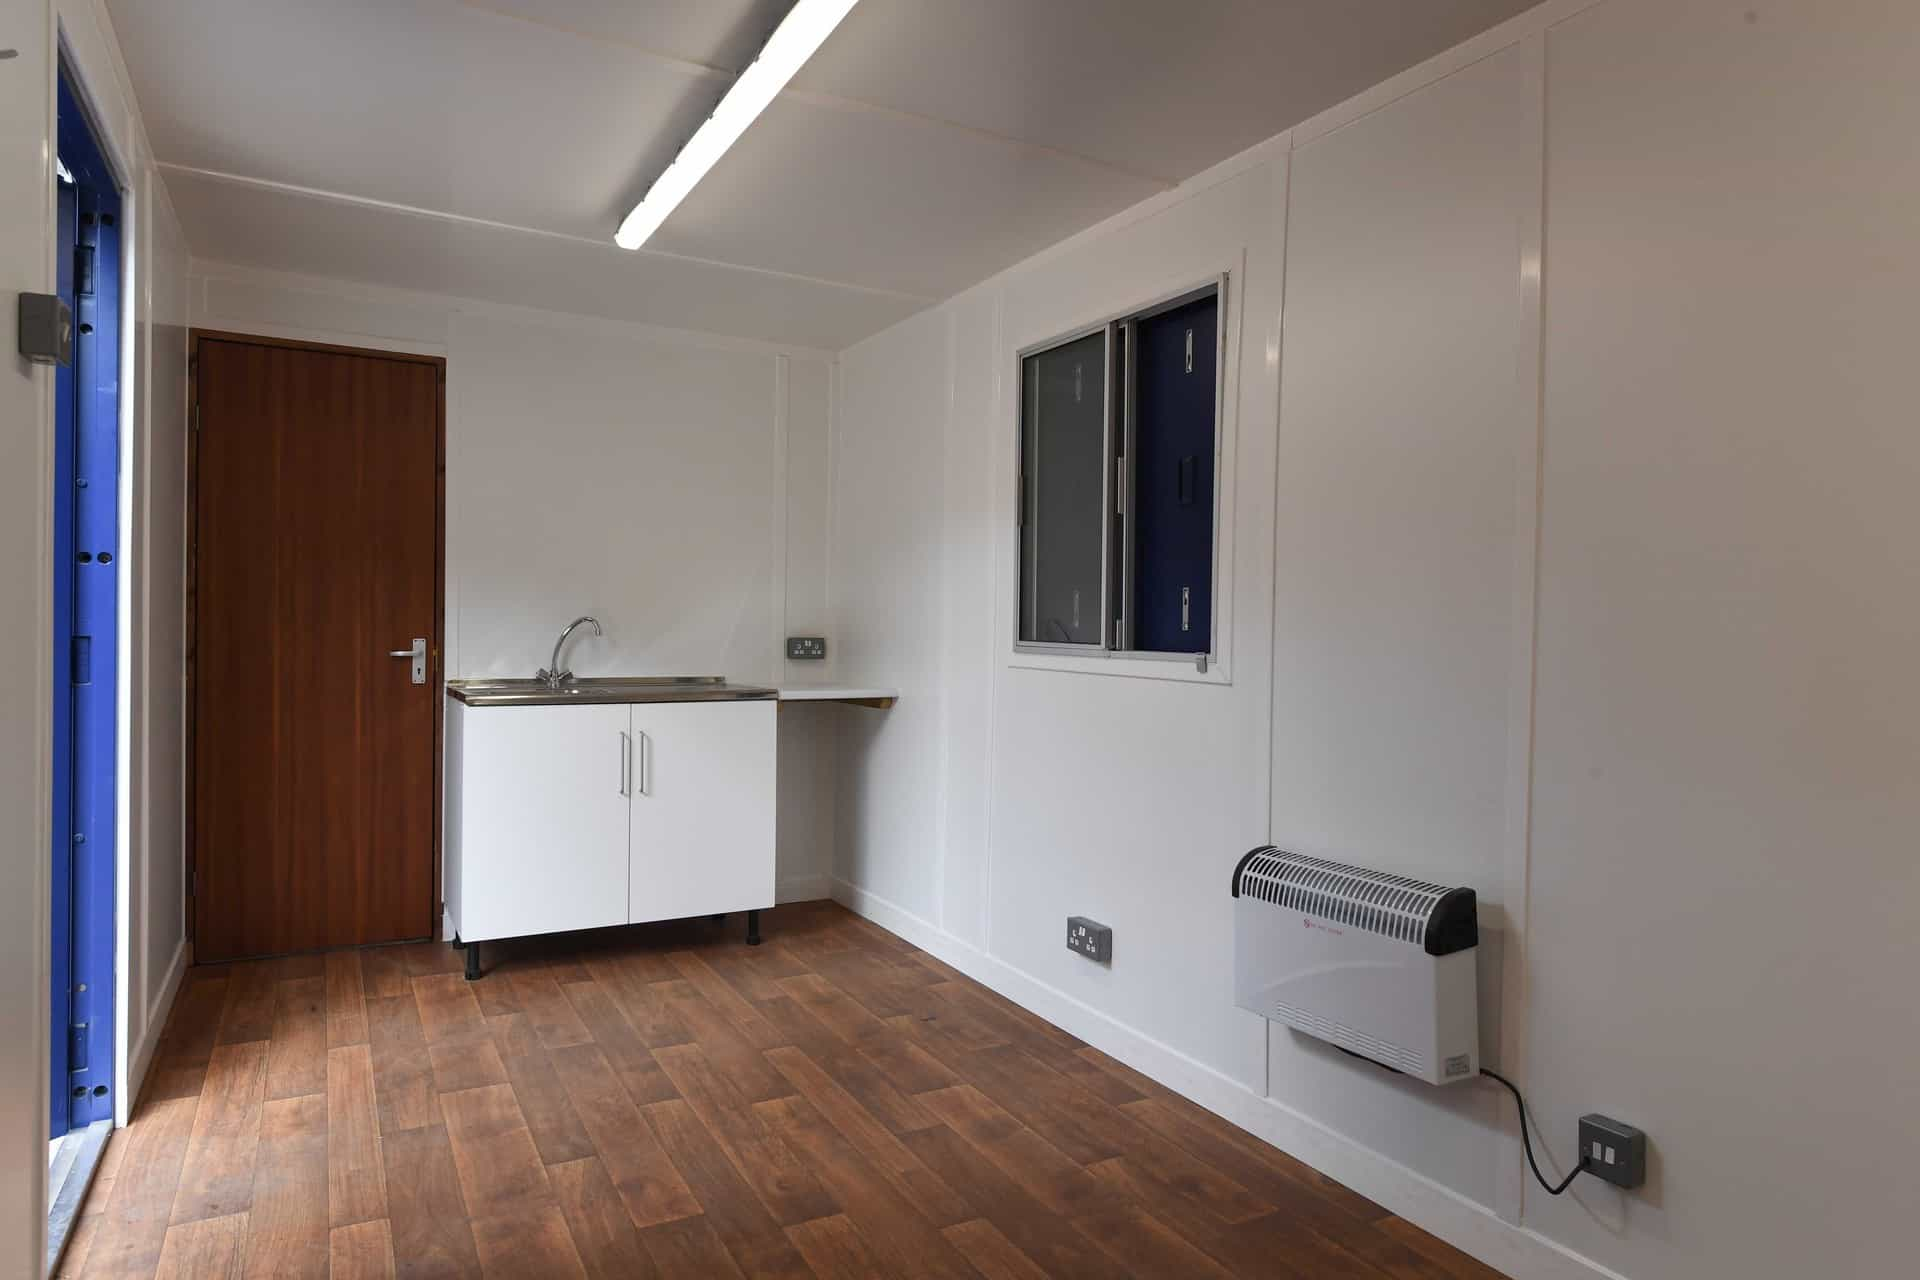 40ft office container conversion with sink unit and hot water boiler